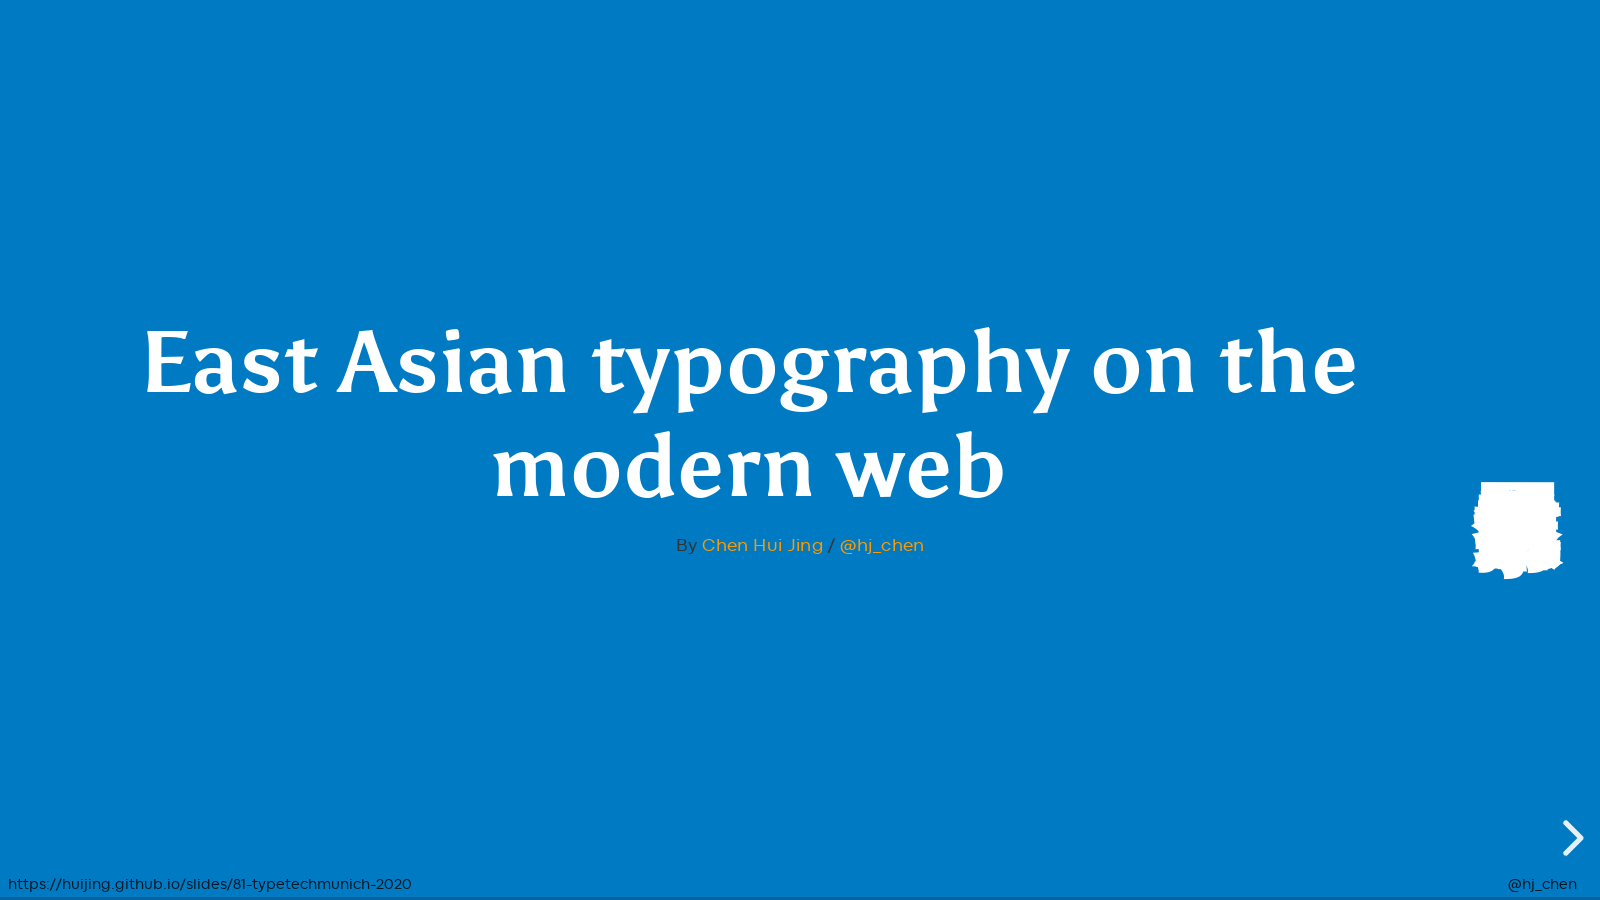 East Asian typography on the modern web by Chen Hui Jing